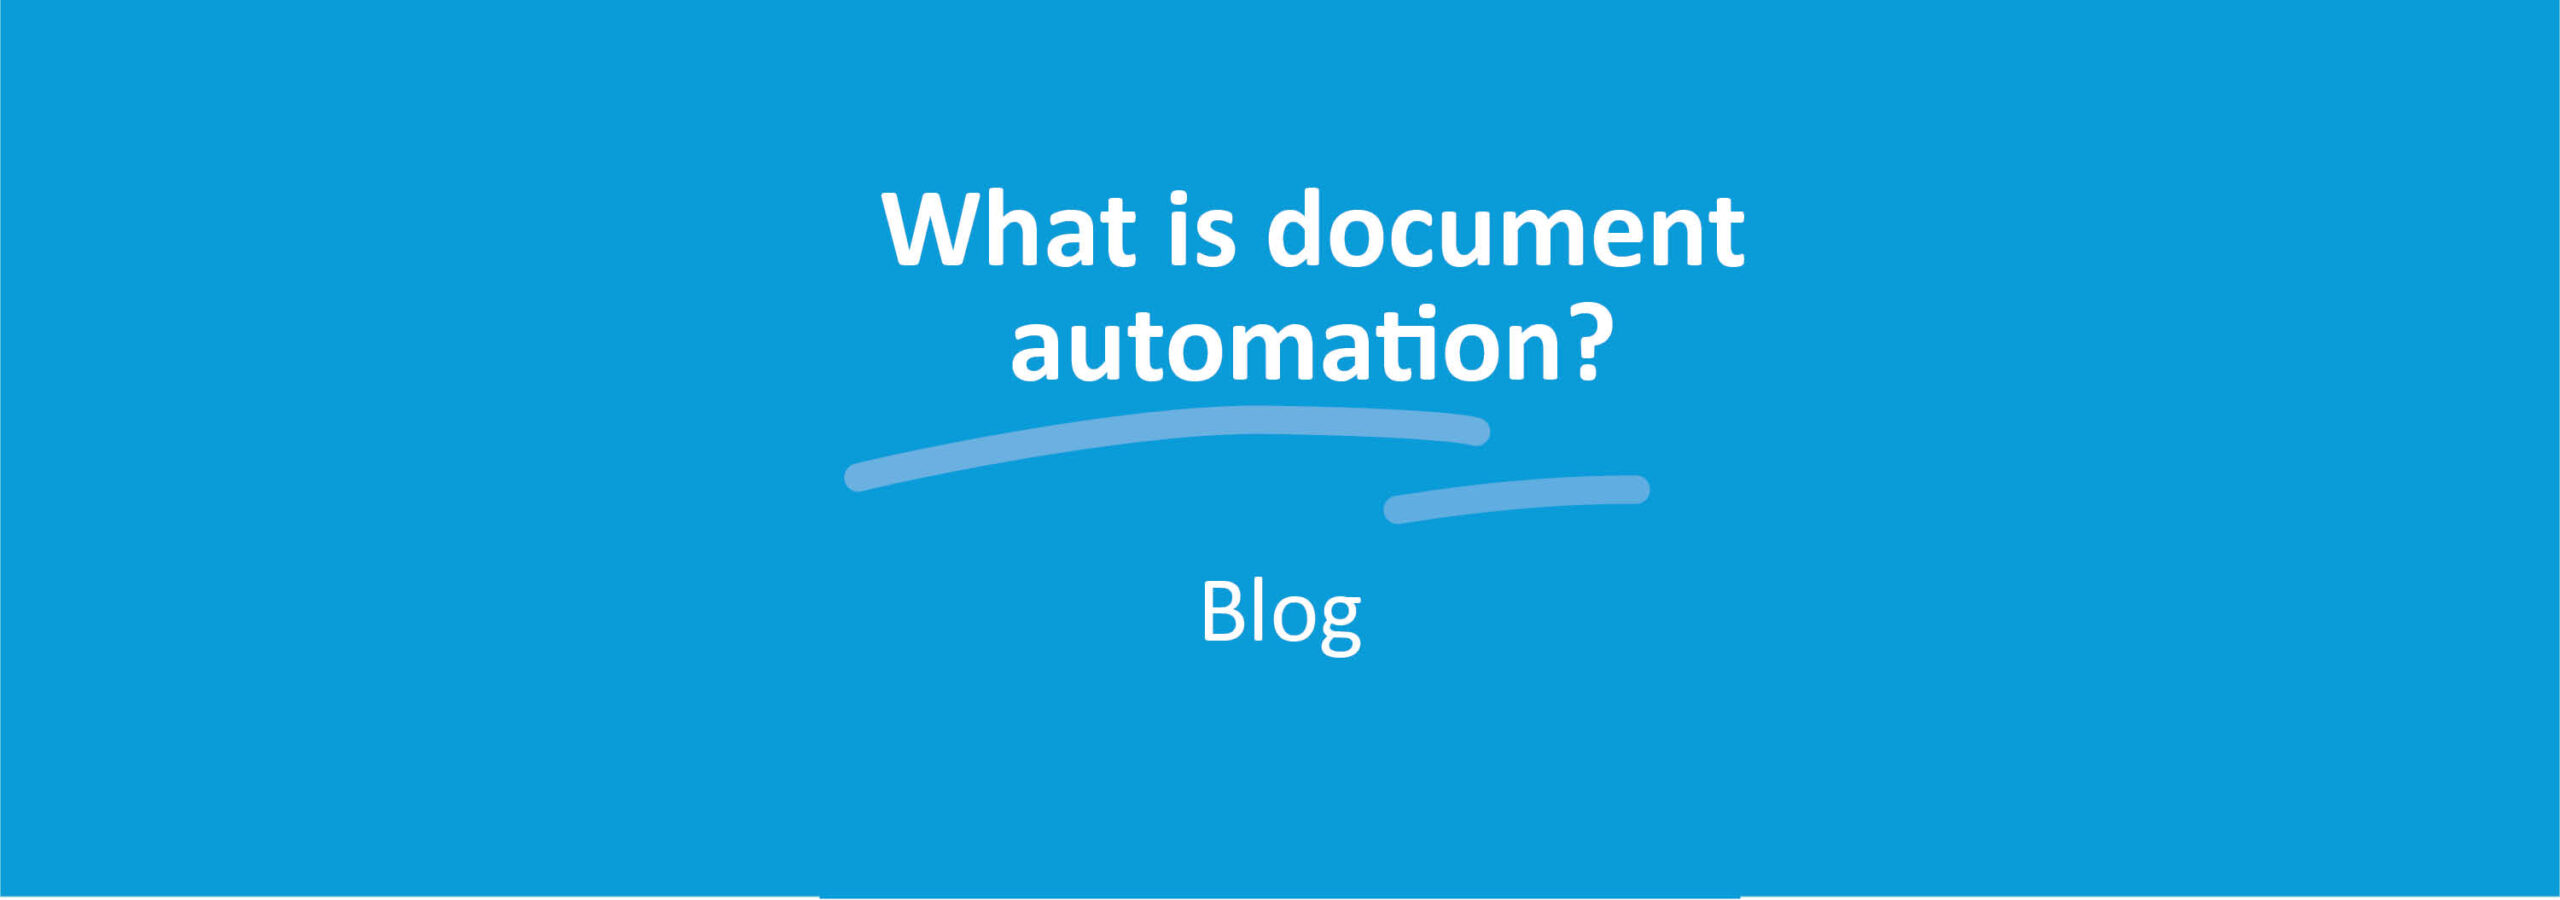 What is document automation?